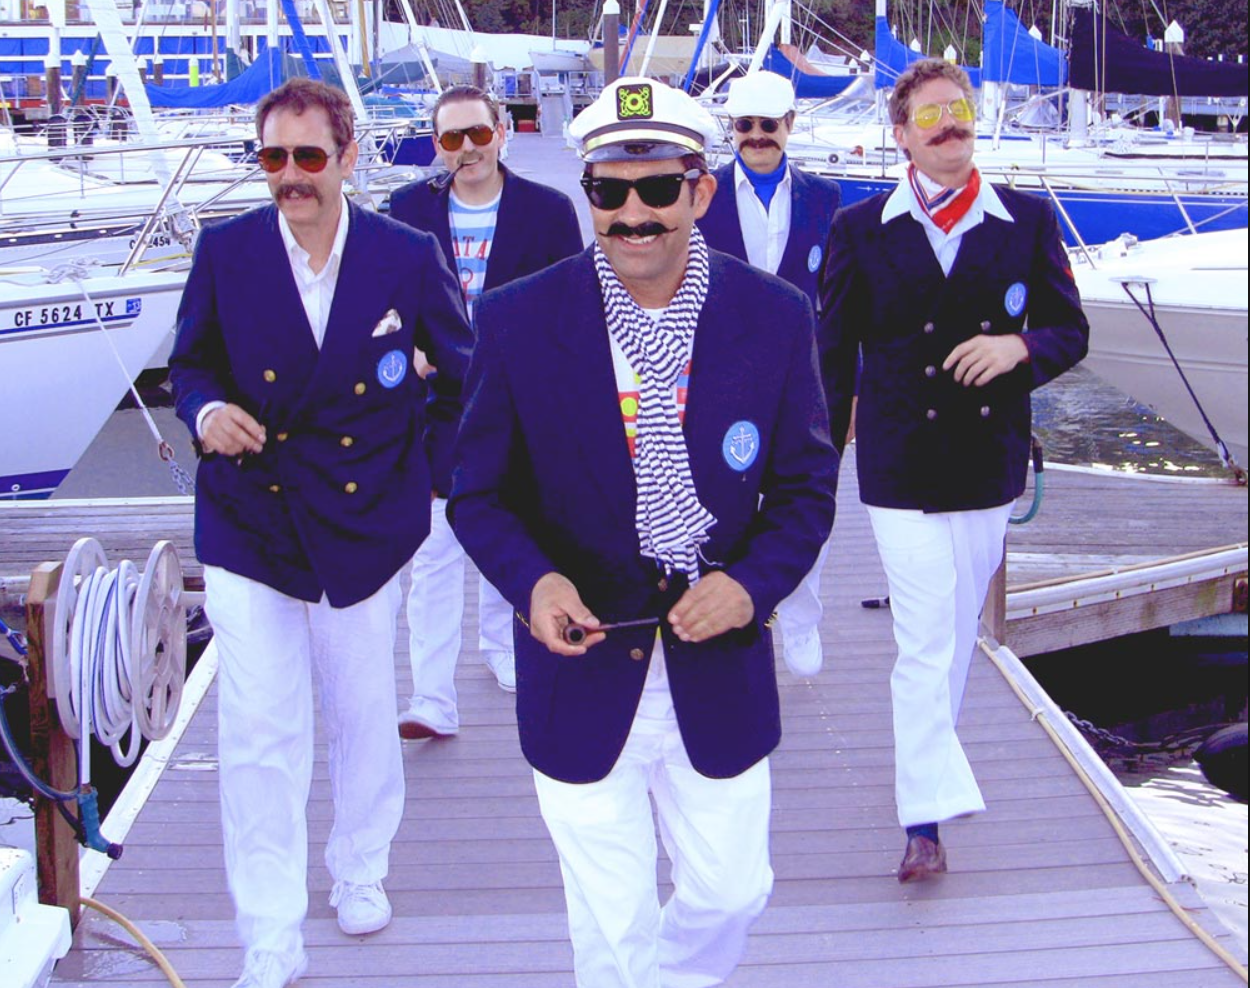 Swagger (With images) | Yacht party, Yacht party theme, Yacht party outfit